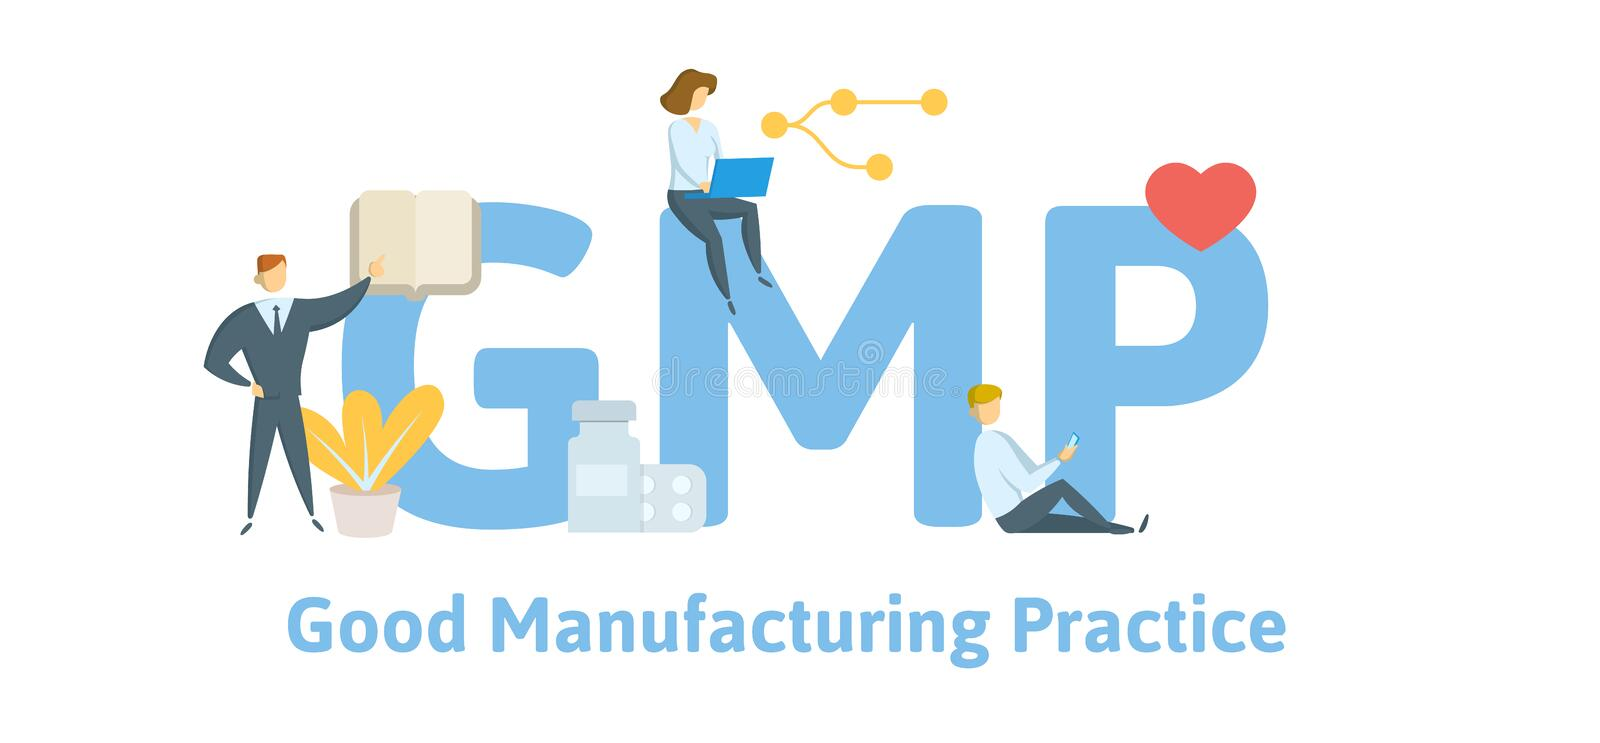 GMP, Good Manufacturing Practice. Concept with keywords, letters and icons. Flat vector illustration. Isolated on white. GMP, Good Manufacturing Practice stock illustration